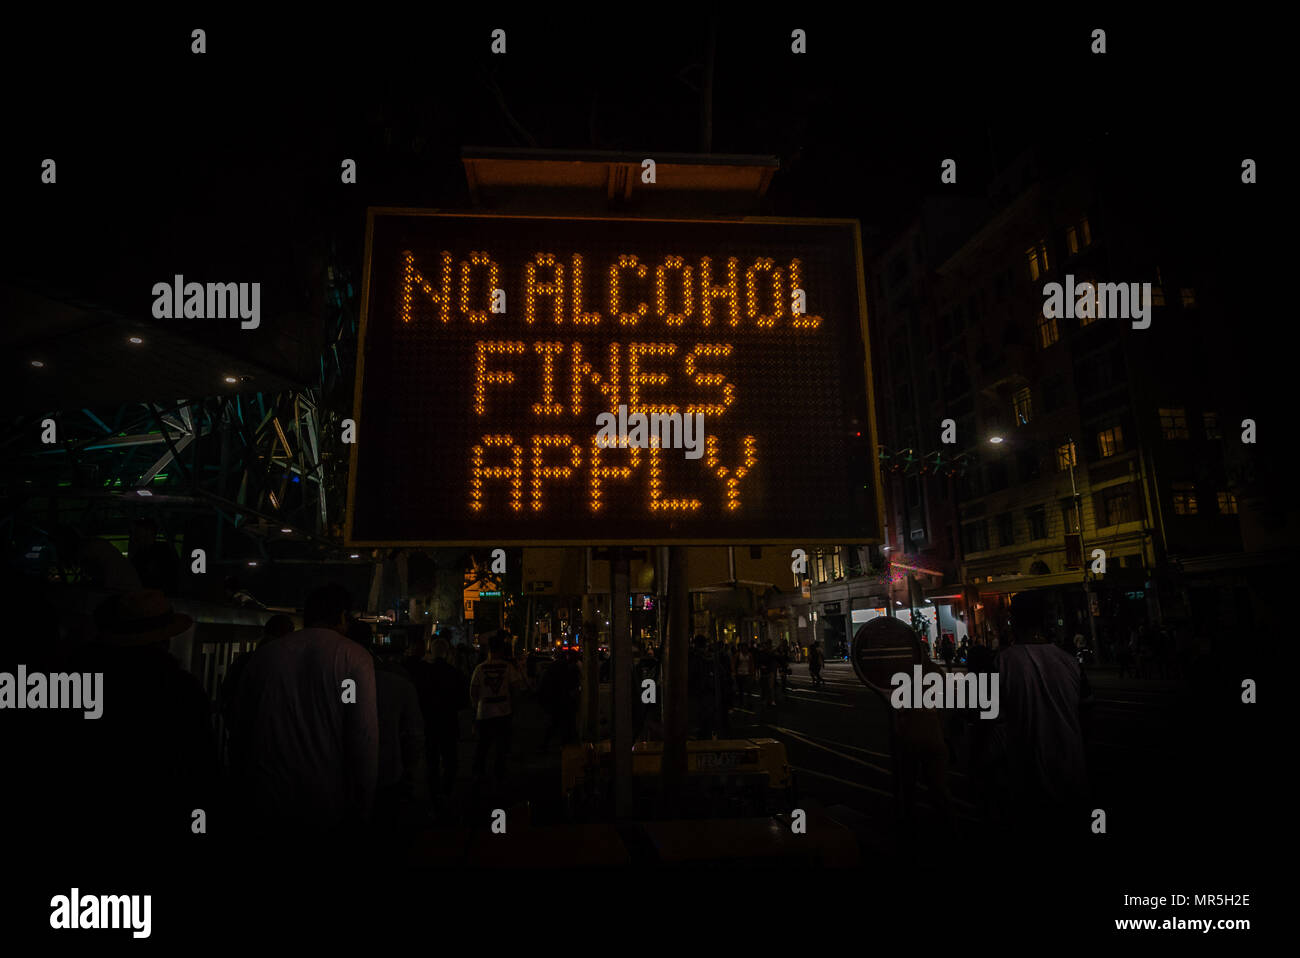 No alcohol fines apply sign prohibiting alcohol consumption - Stock Image